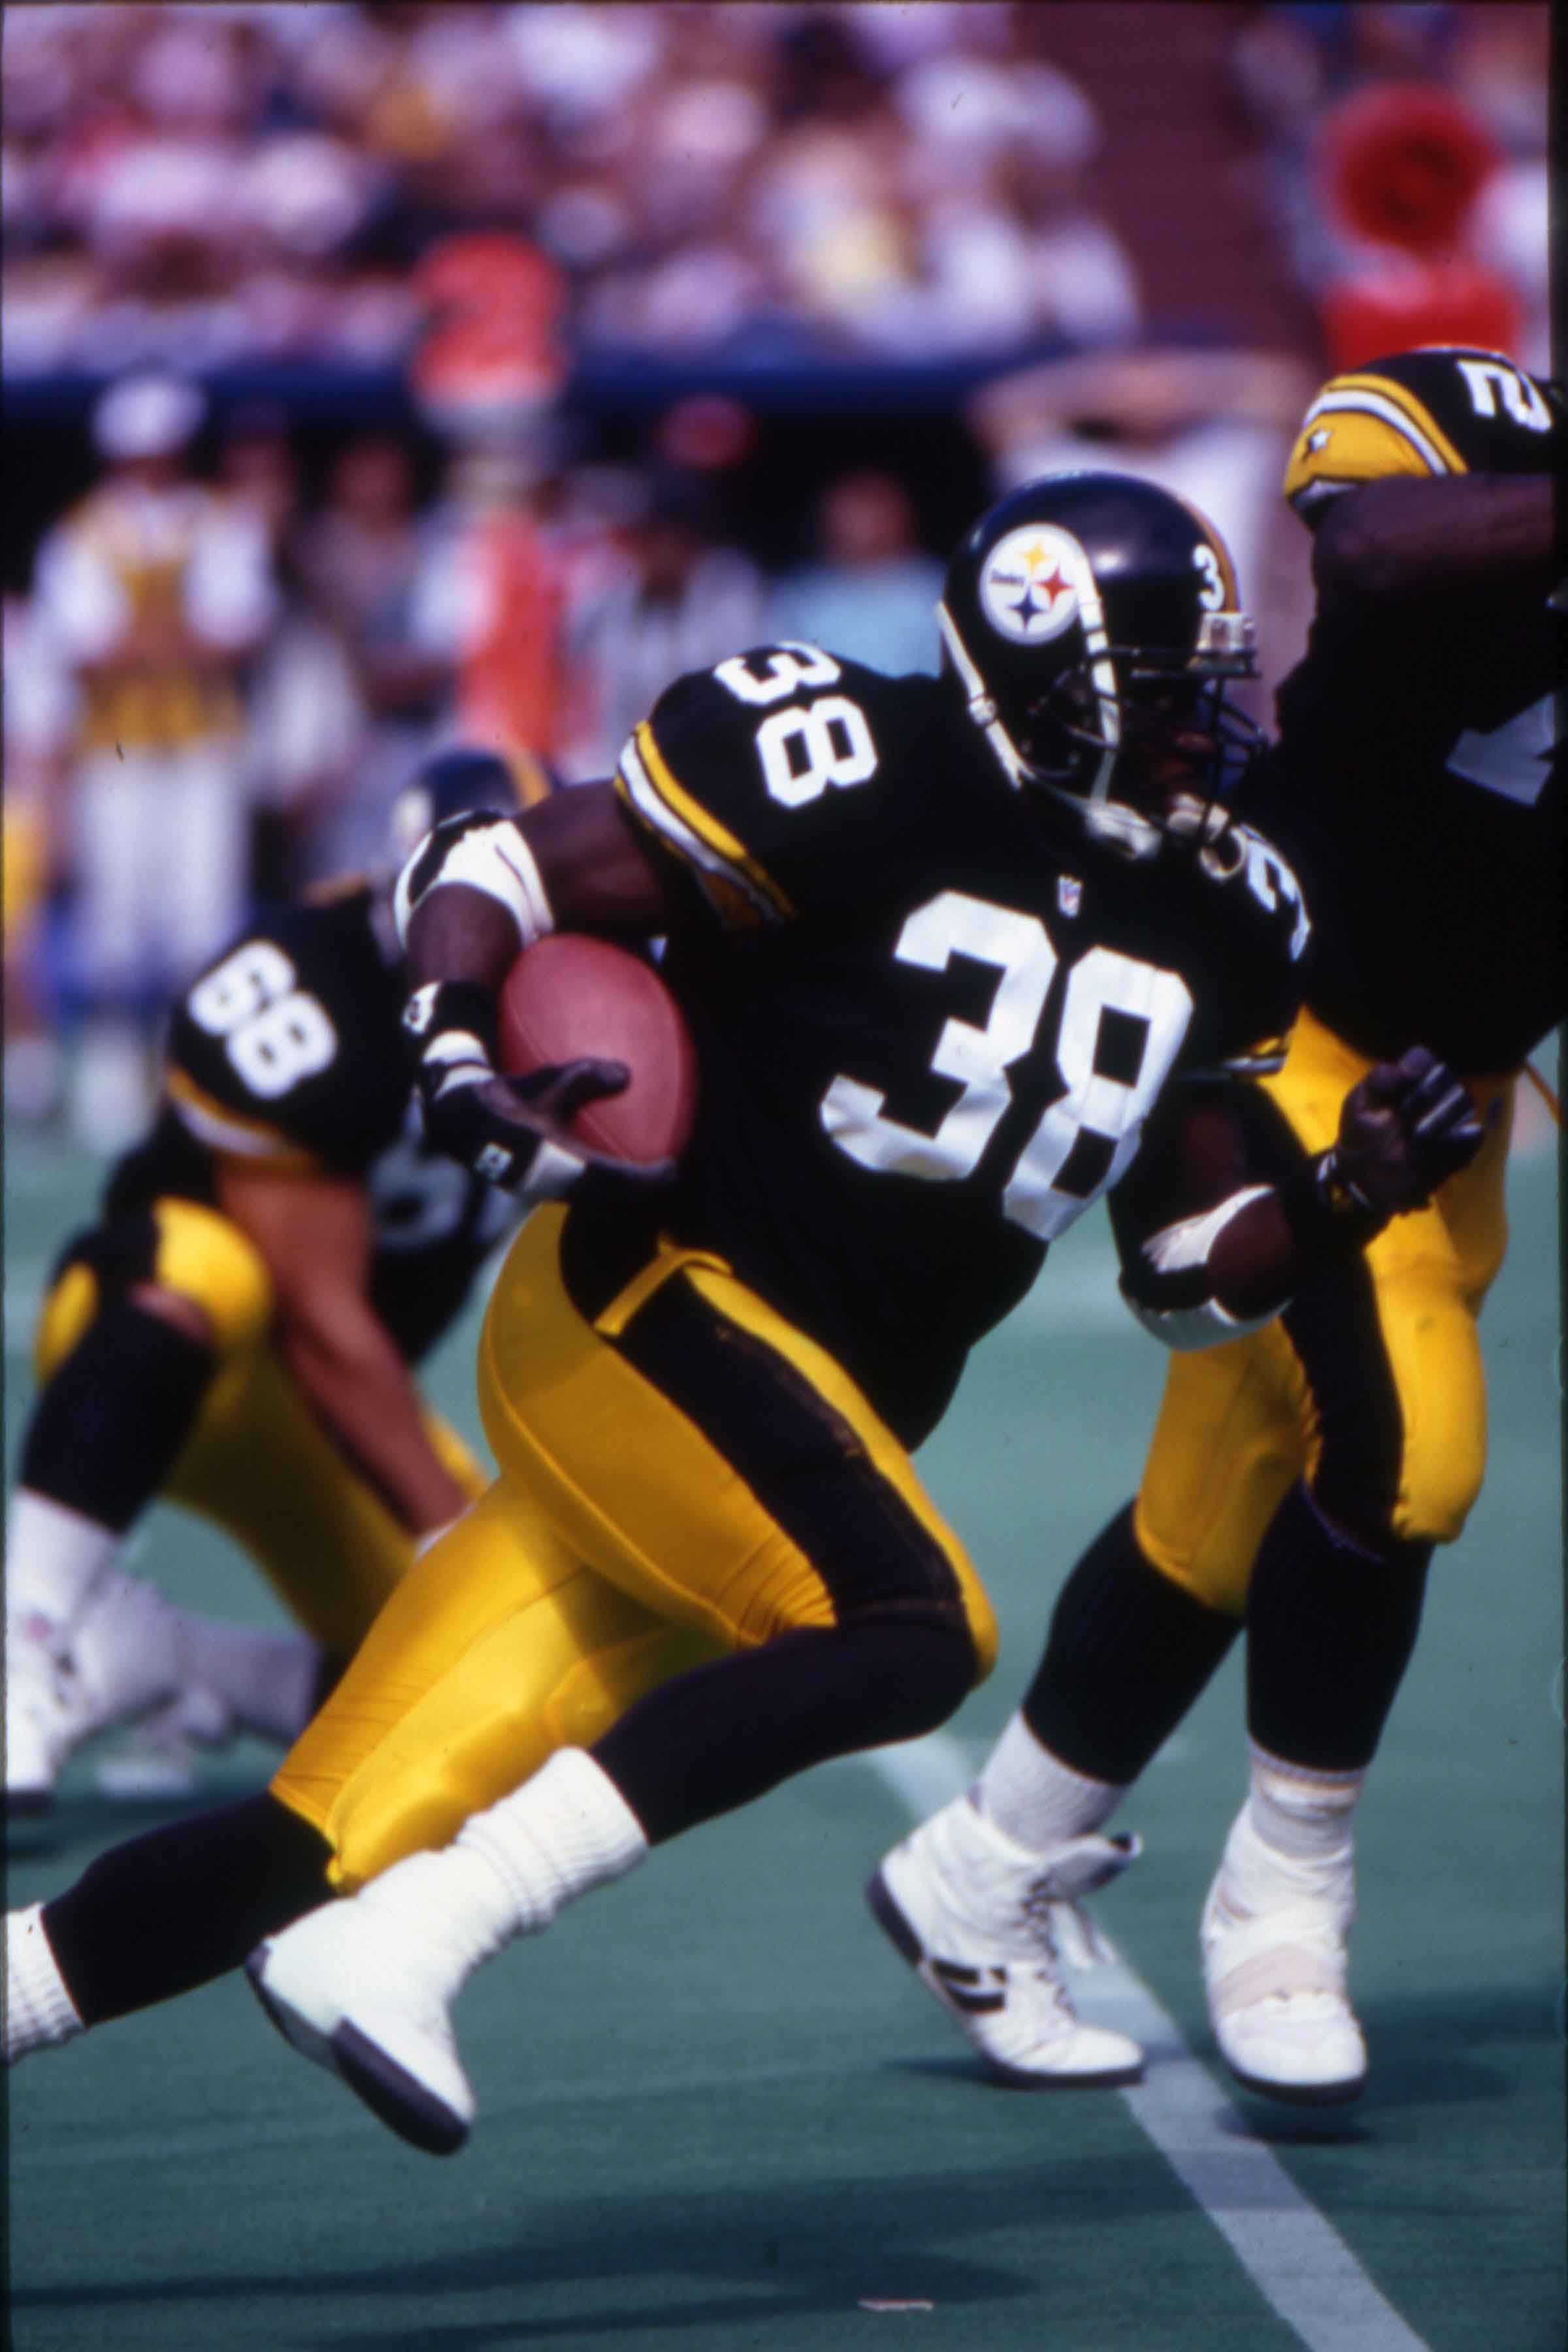 Tim Worley running for the Pittsburgh Steelers.